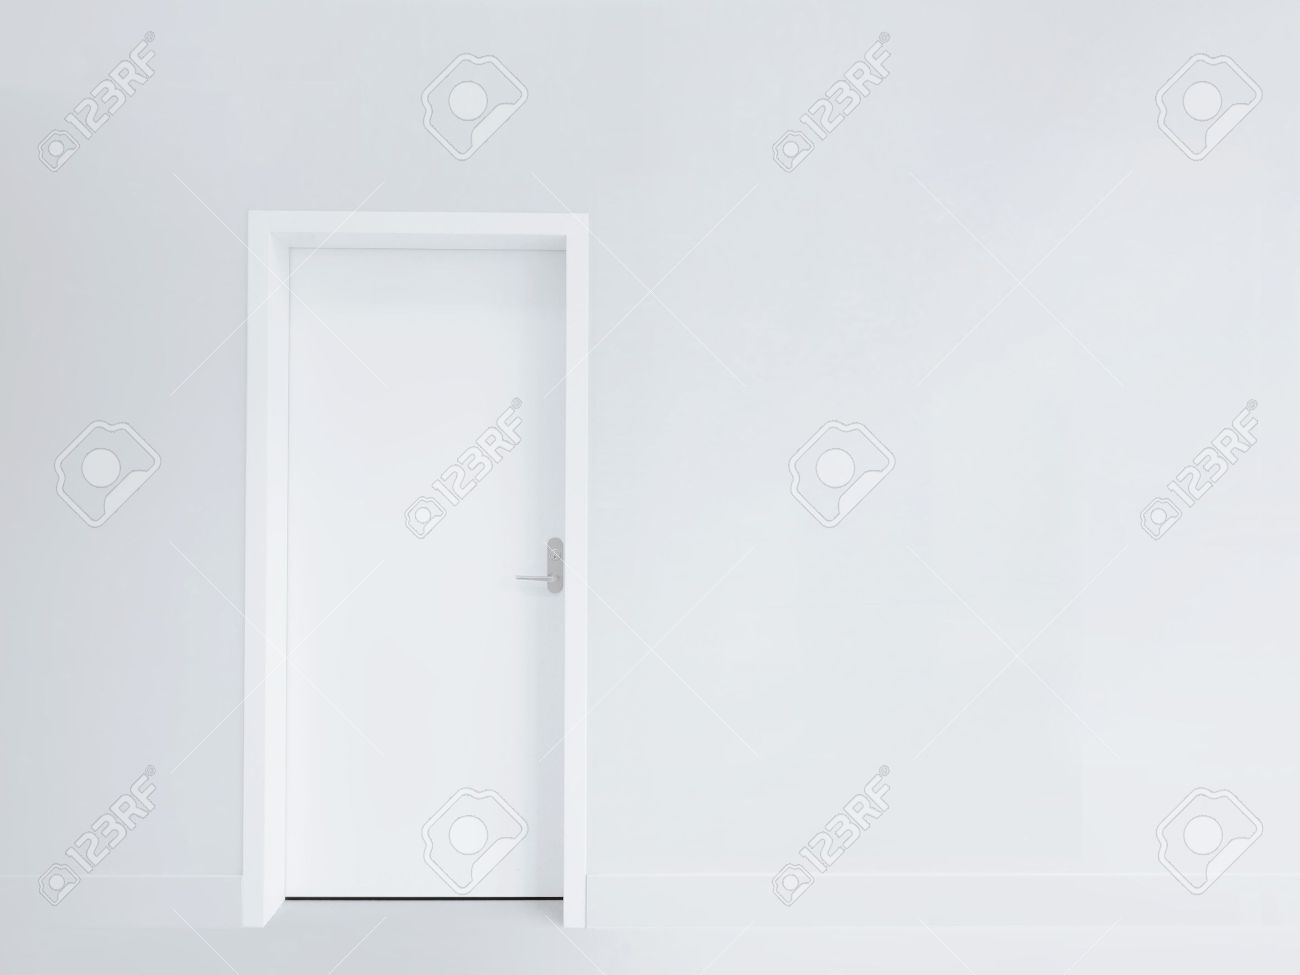 Stock Photo - White door and blank wall & White Door And Blank Wall Stock Photo Picture And Royalty Free ...